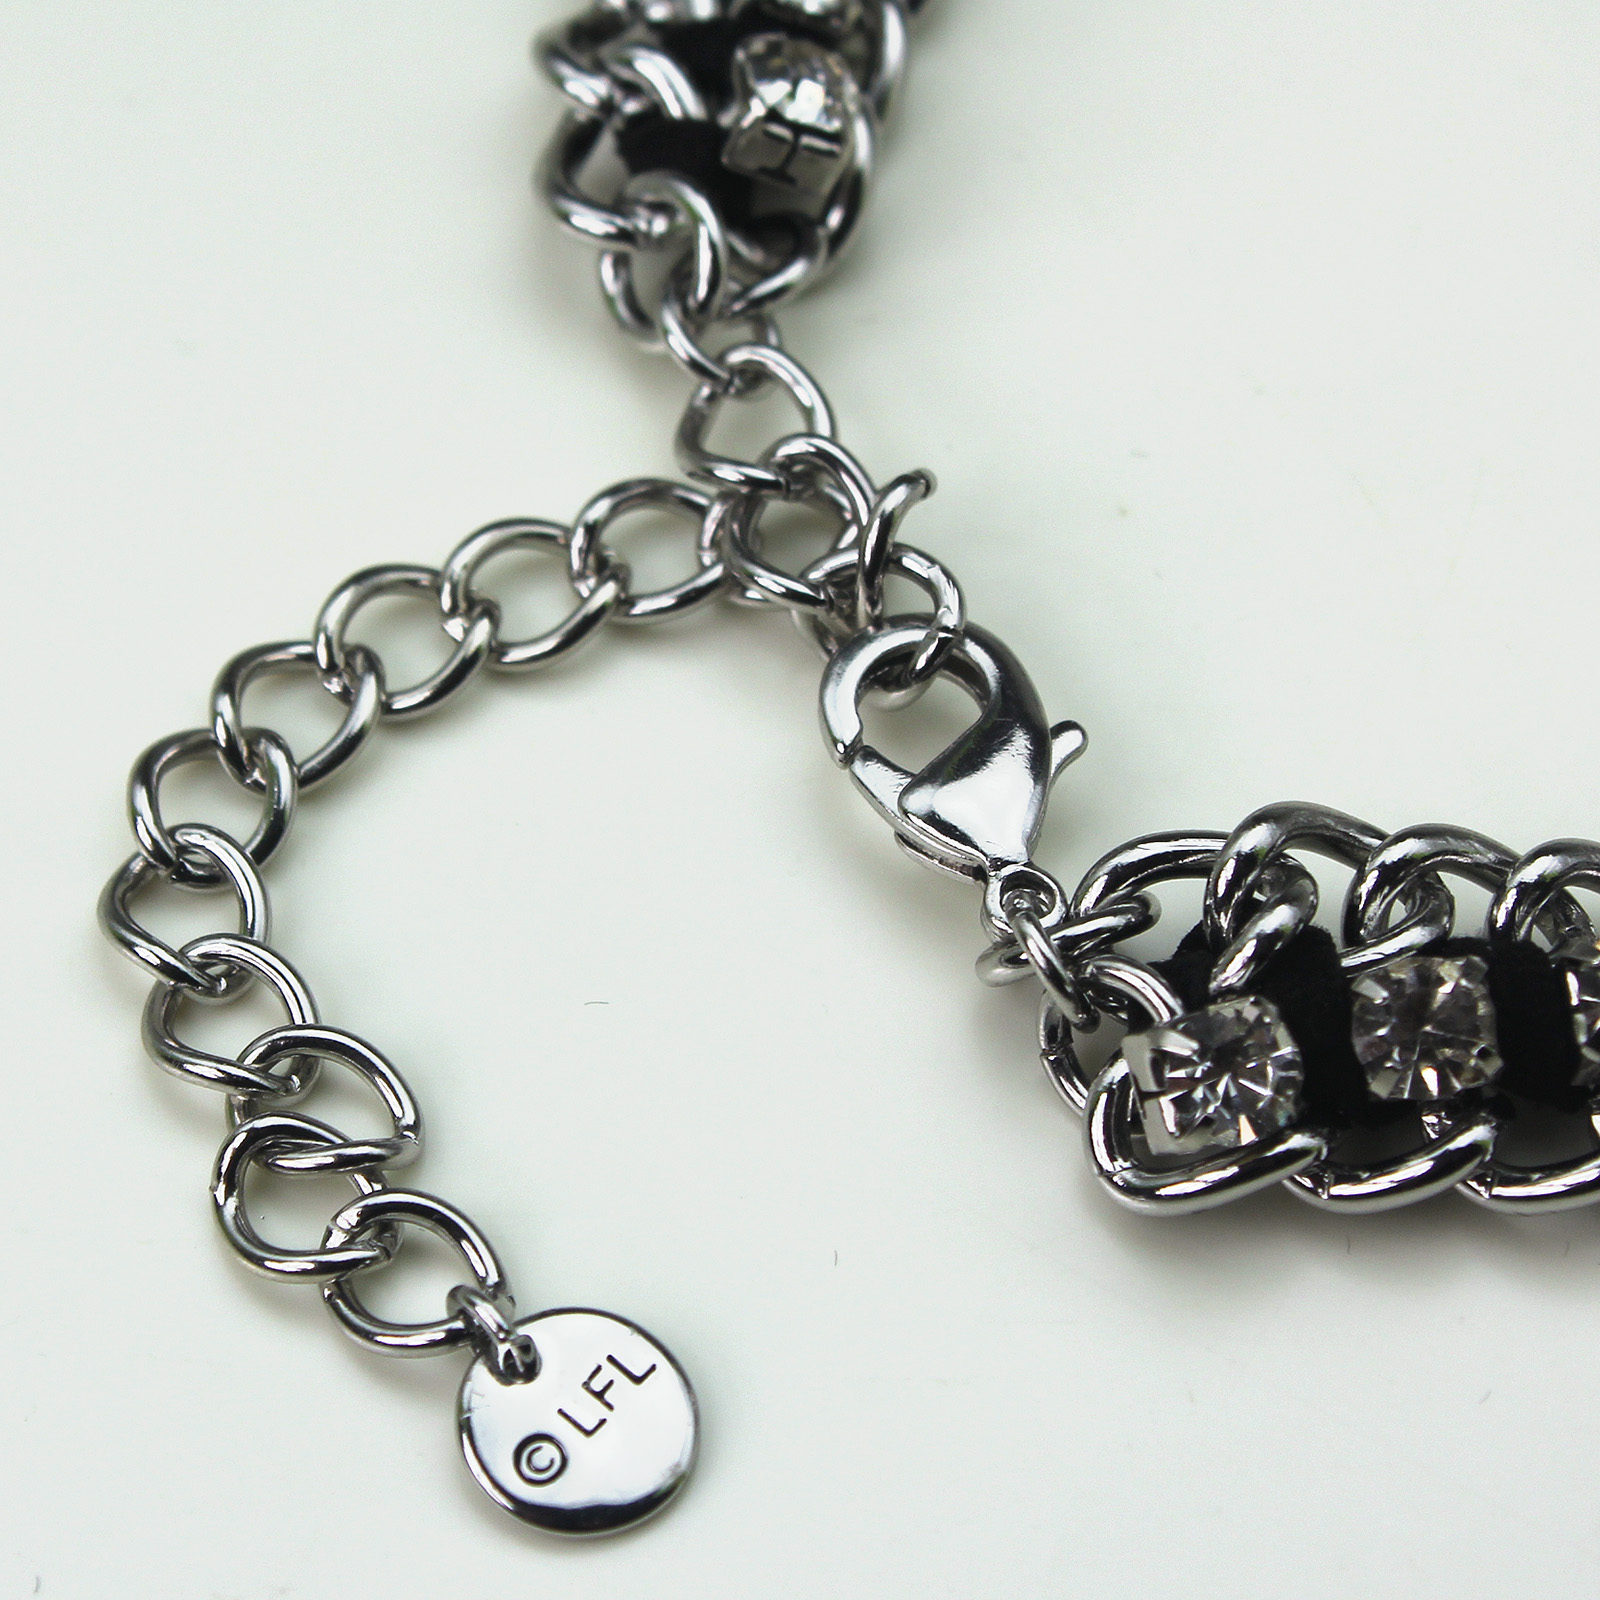 HSN - 'bling' Stormtrooper helmet necklace by SG@NYC, LLC (chain detail)